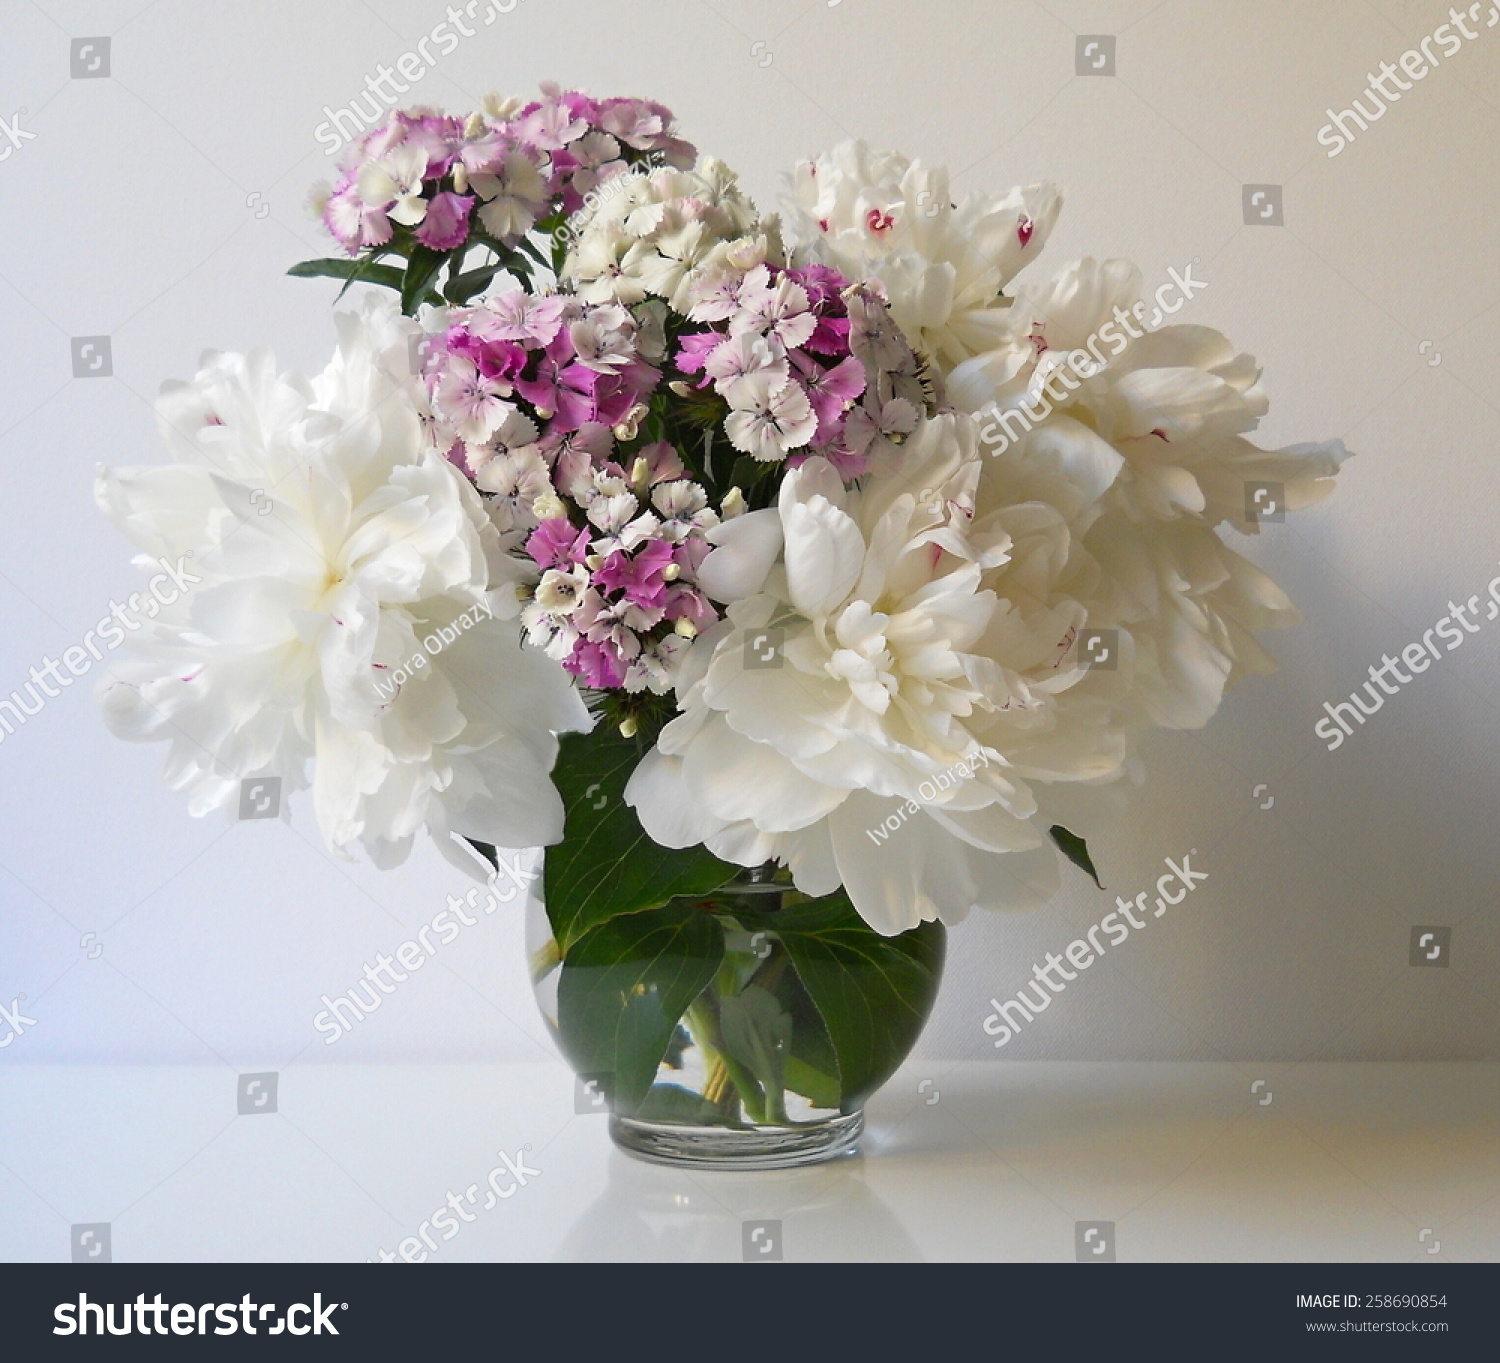 Royalty Free Bouquet Of Peonies And Carnations 258690854 Stock